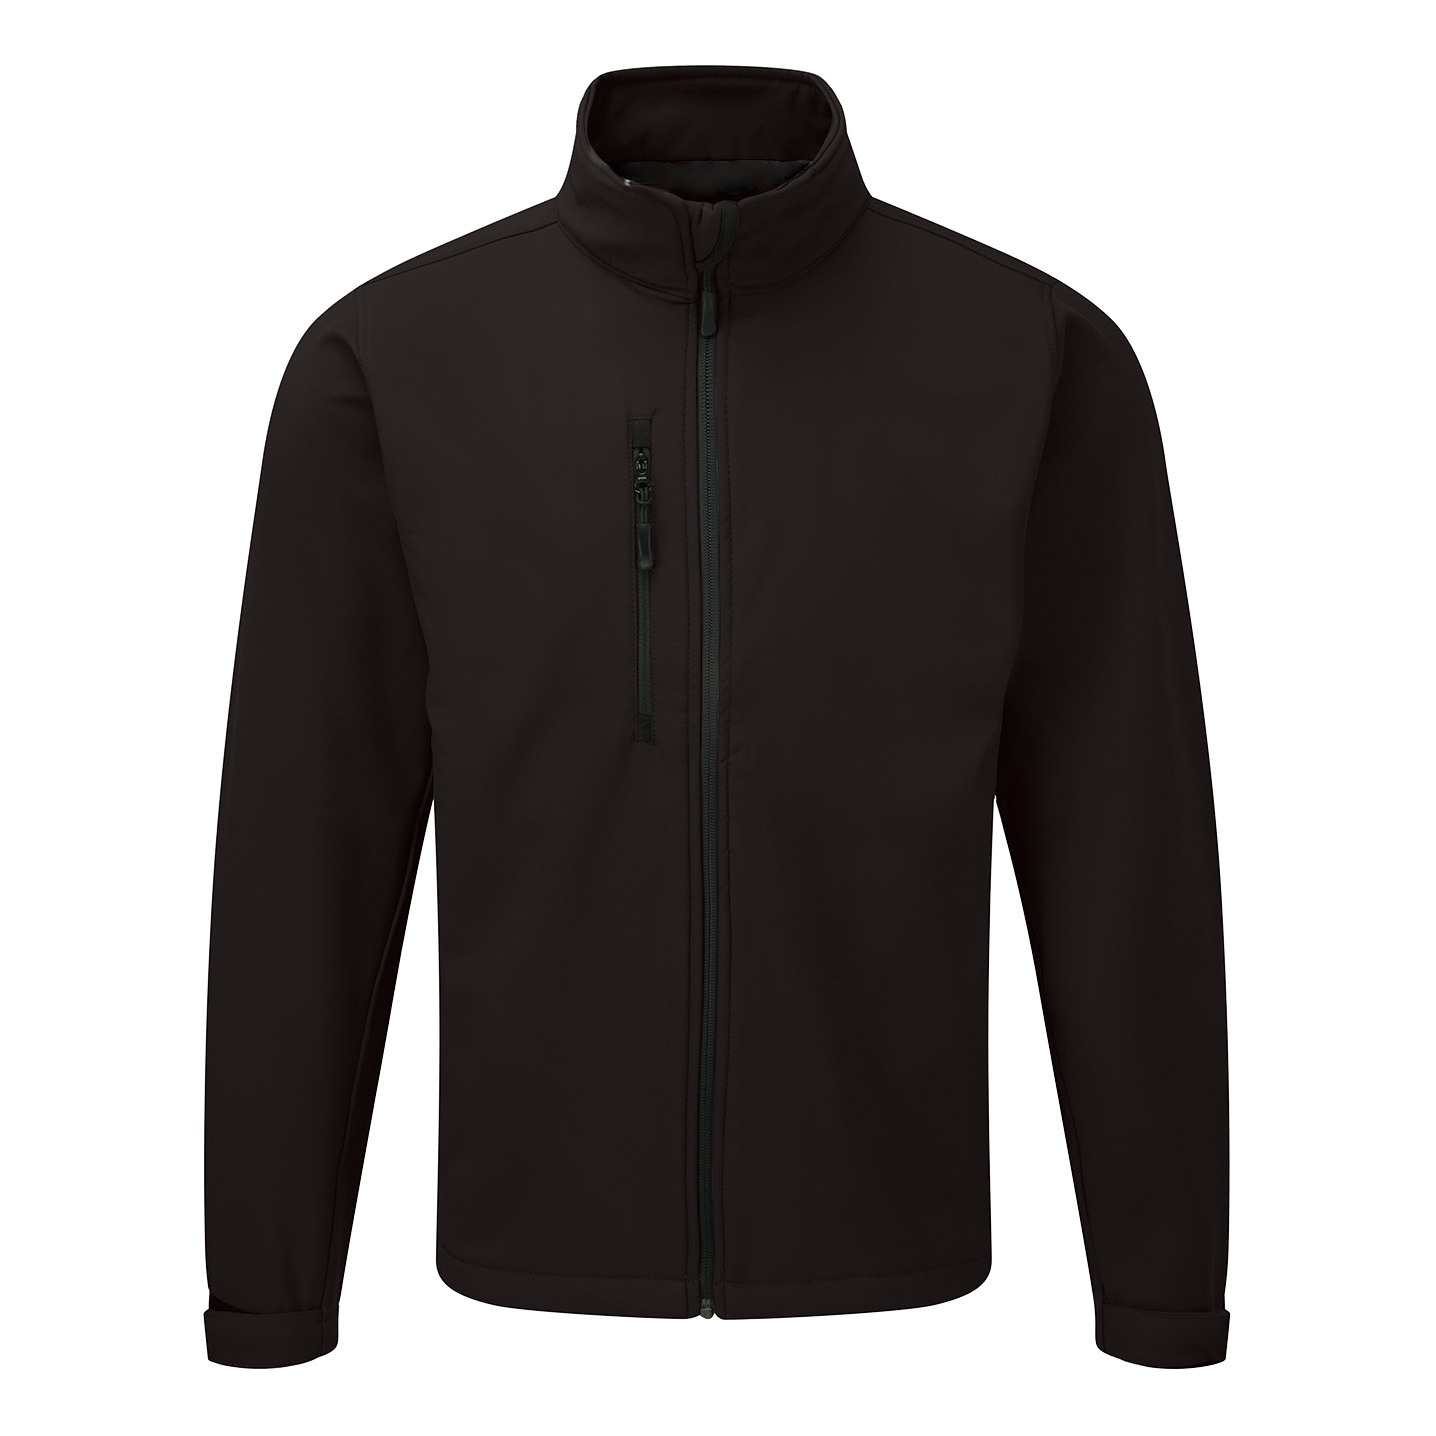 Click Workwear Soft Shell Jacket Water Resistant Windproof 3XL Blk Ref SSJBLXXXL *Approx 3 Day Leadtime*